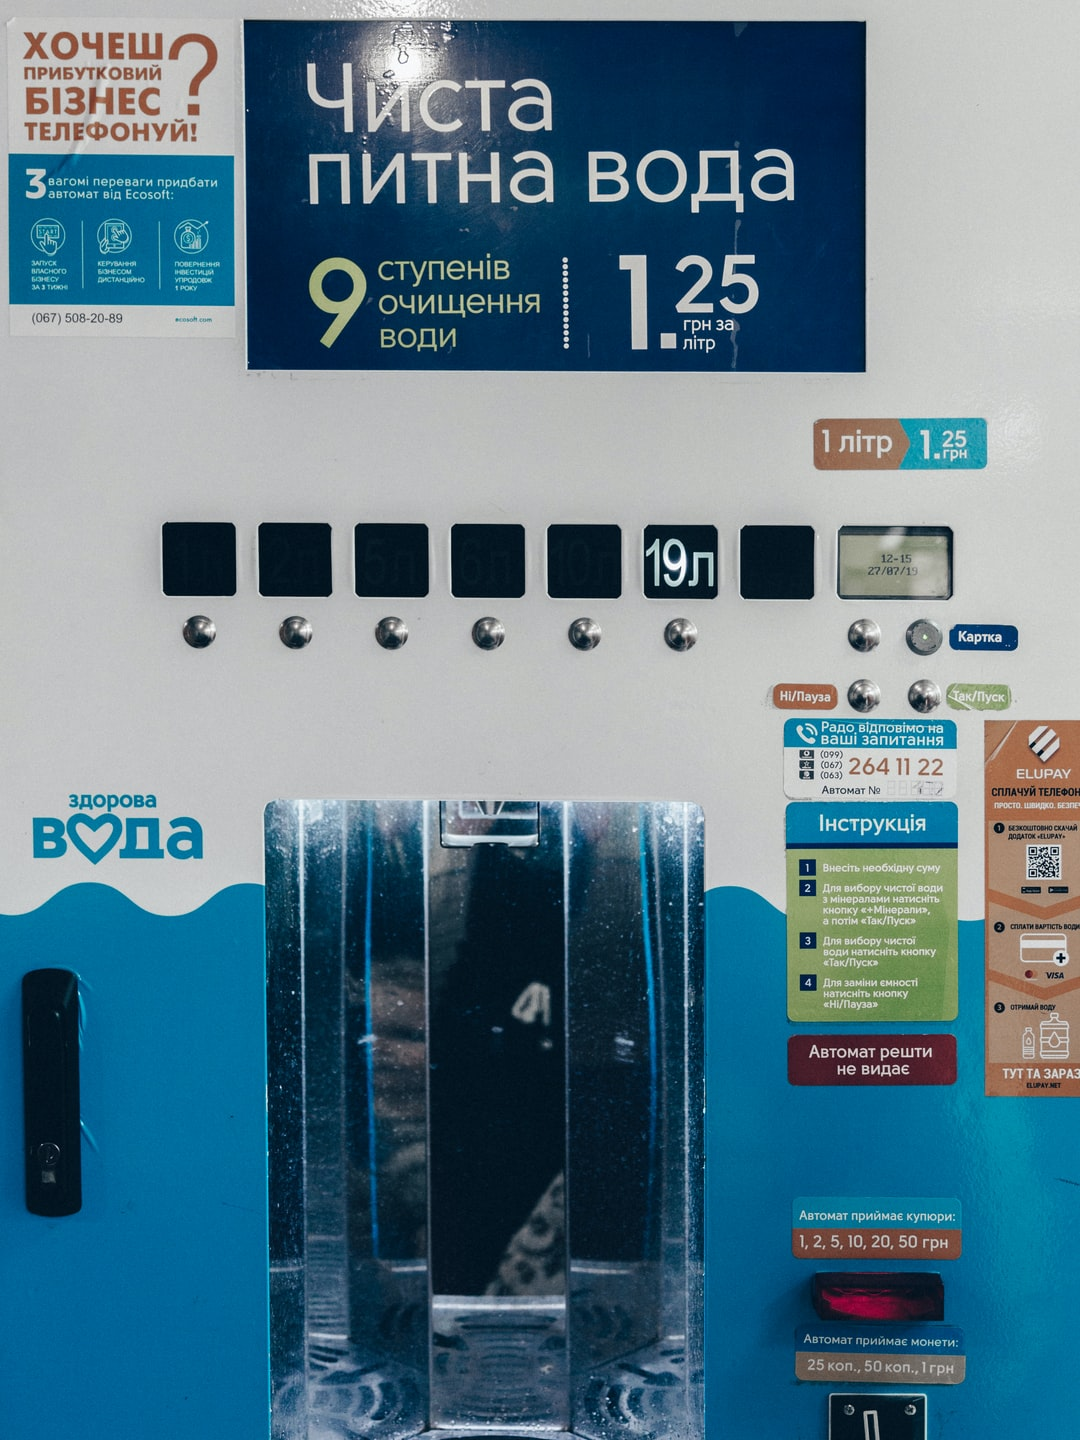 Vending machine for drinking water